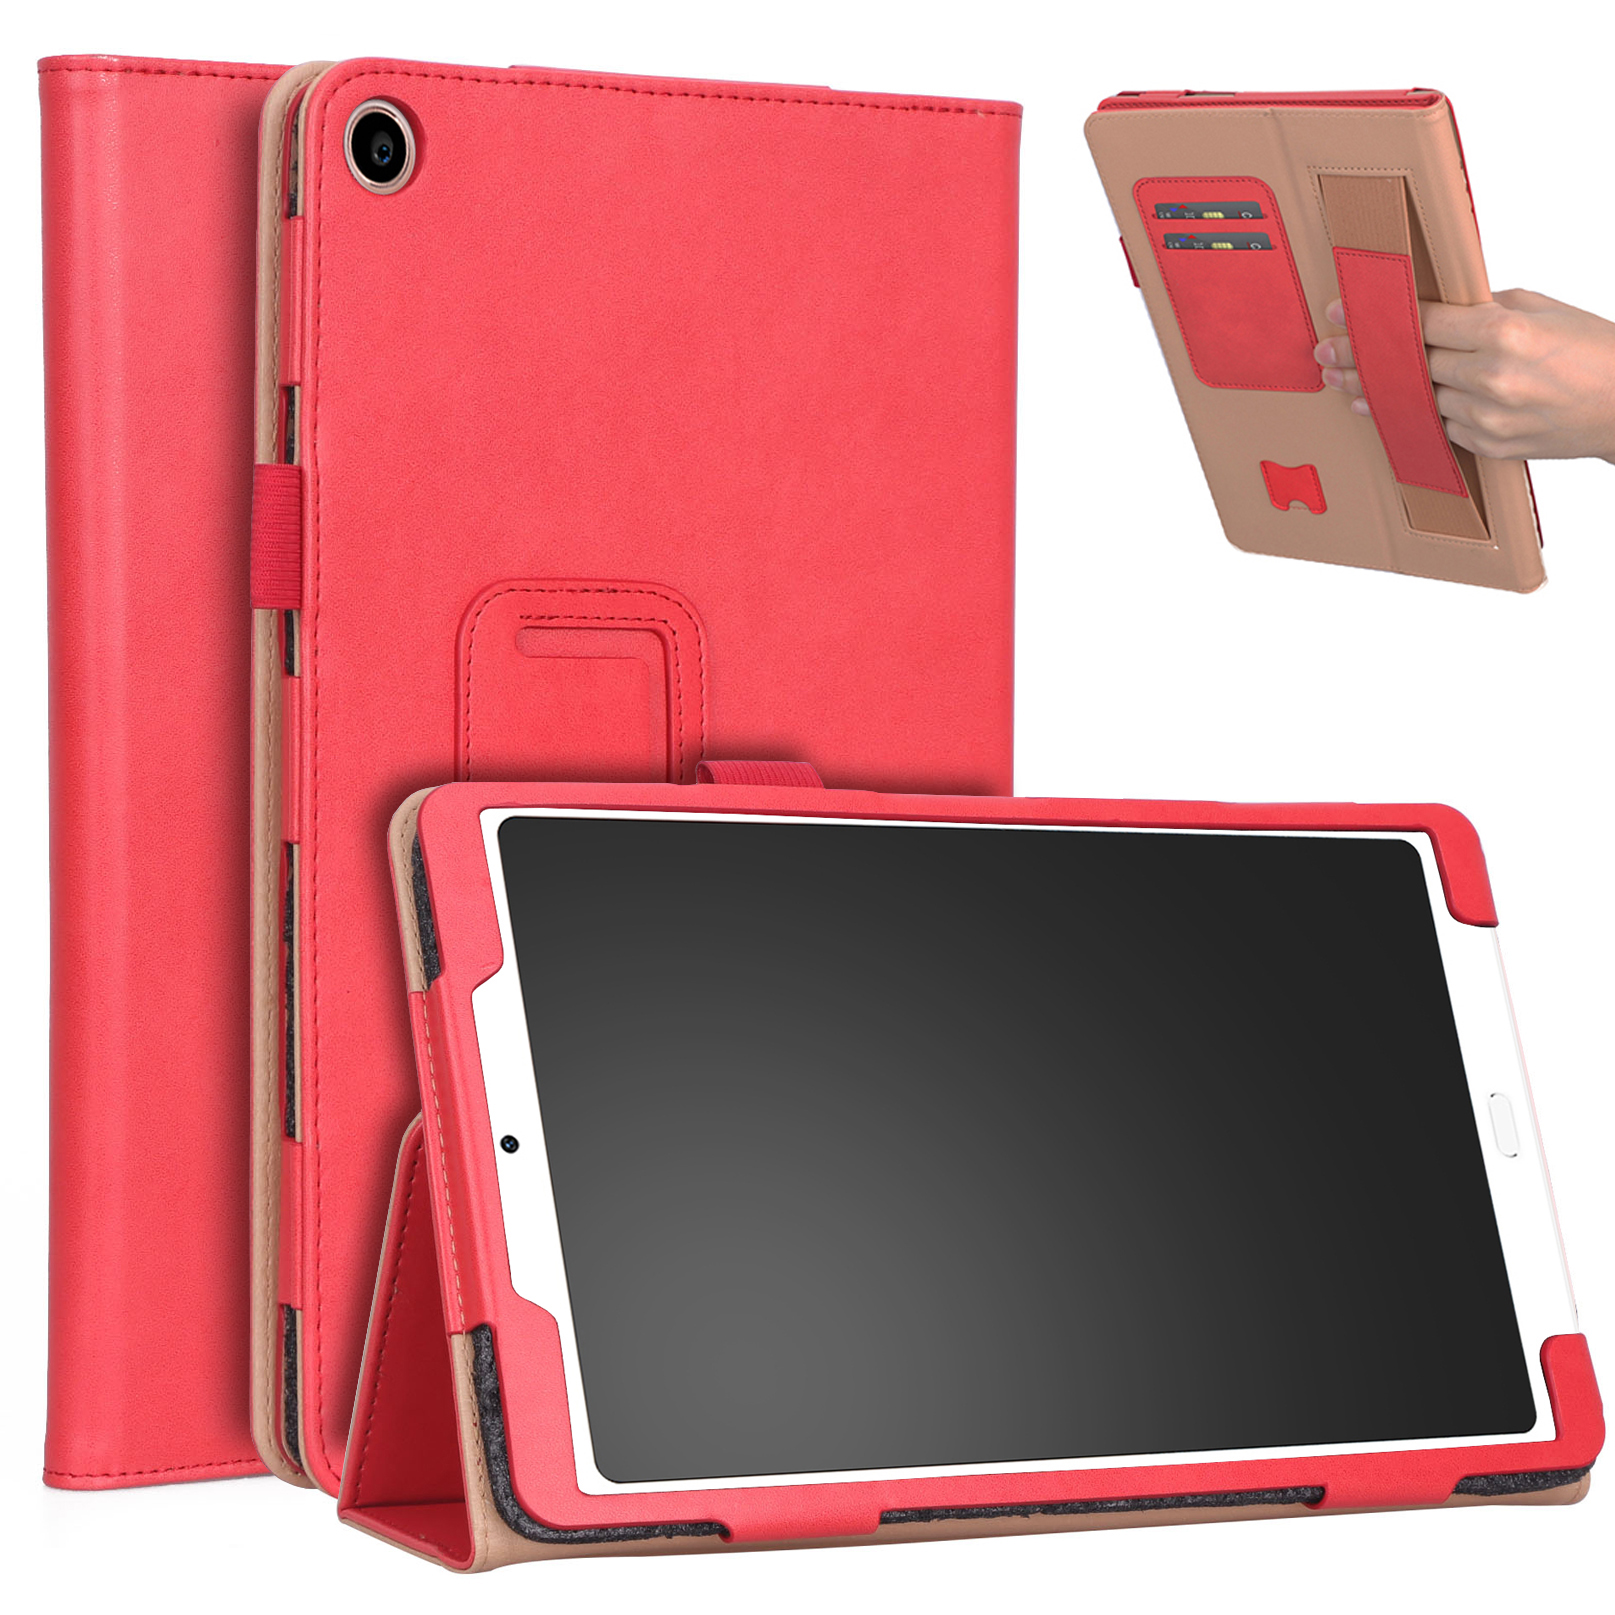 For Xiaomi tablet 4 plus 10.1 Retro Pattern PU Tablet Protective Case with Hand Support Card Slot Bracket Sleep Function red_Xiaomi tablet 4 plus 10.1